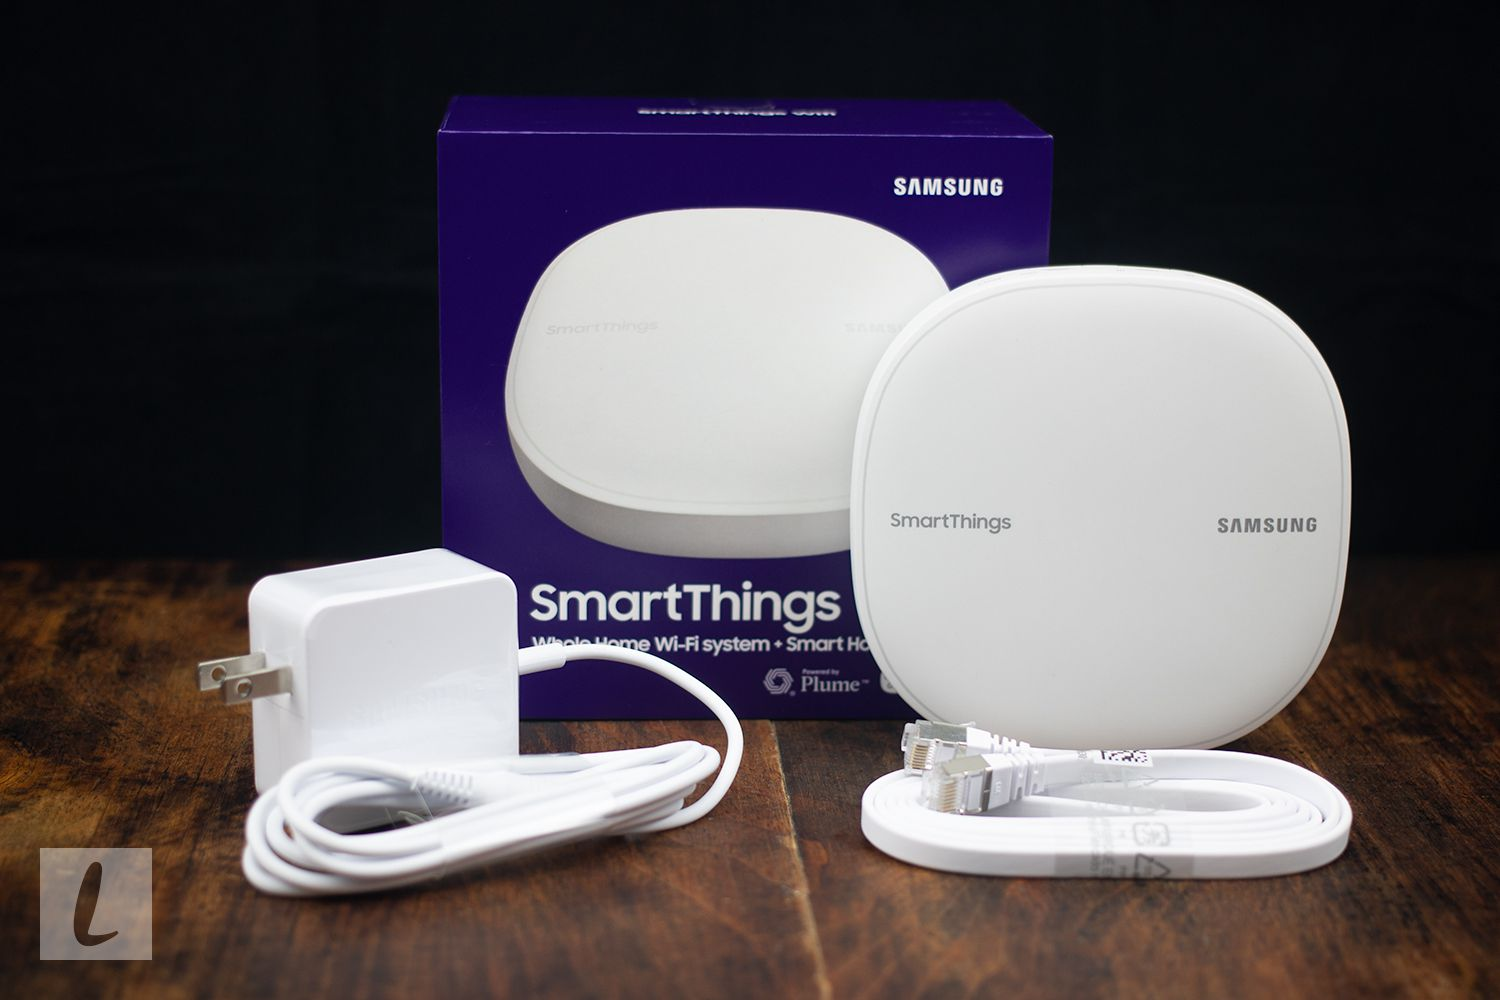 Samsung SmartThings Wifi Mesh Router and Smart Home Hub